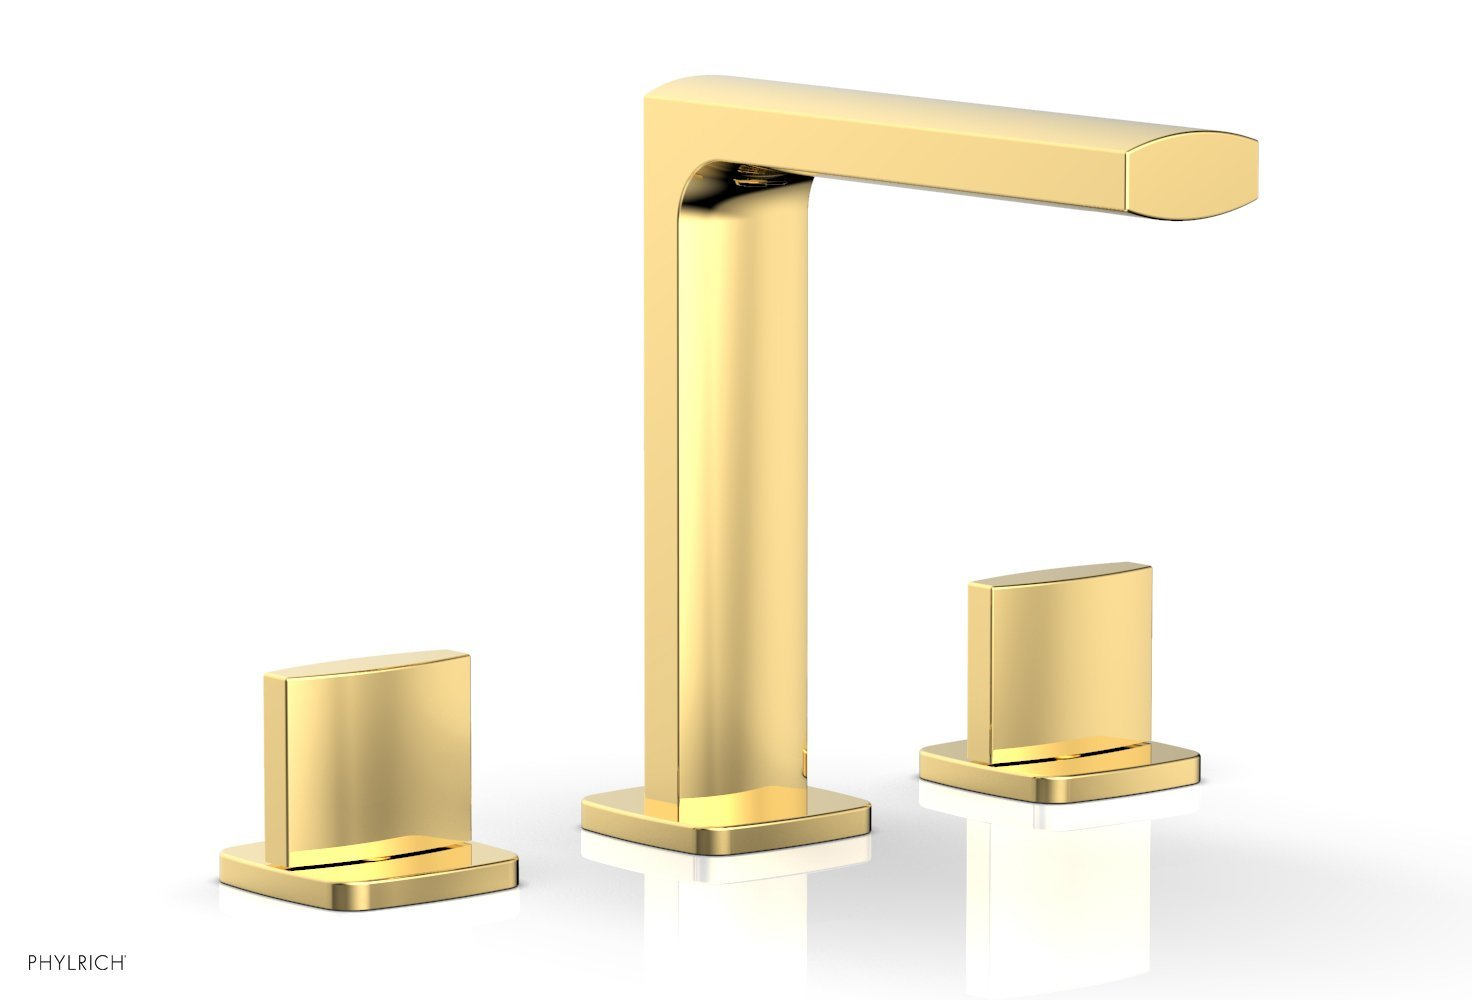 Phylrich 181-01-025 RADI Widespread Faucet - Blade Handle High Spout - Polished Gold